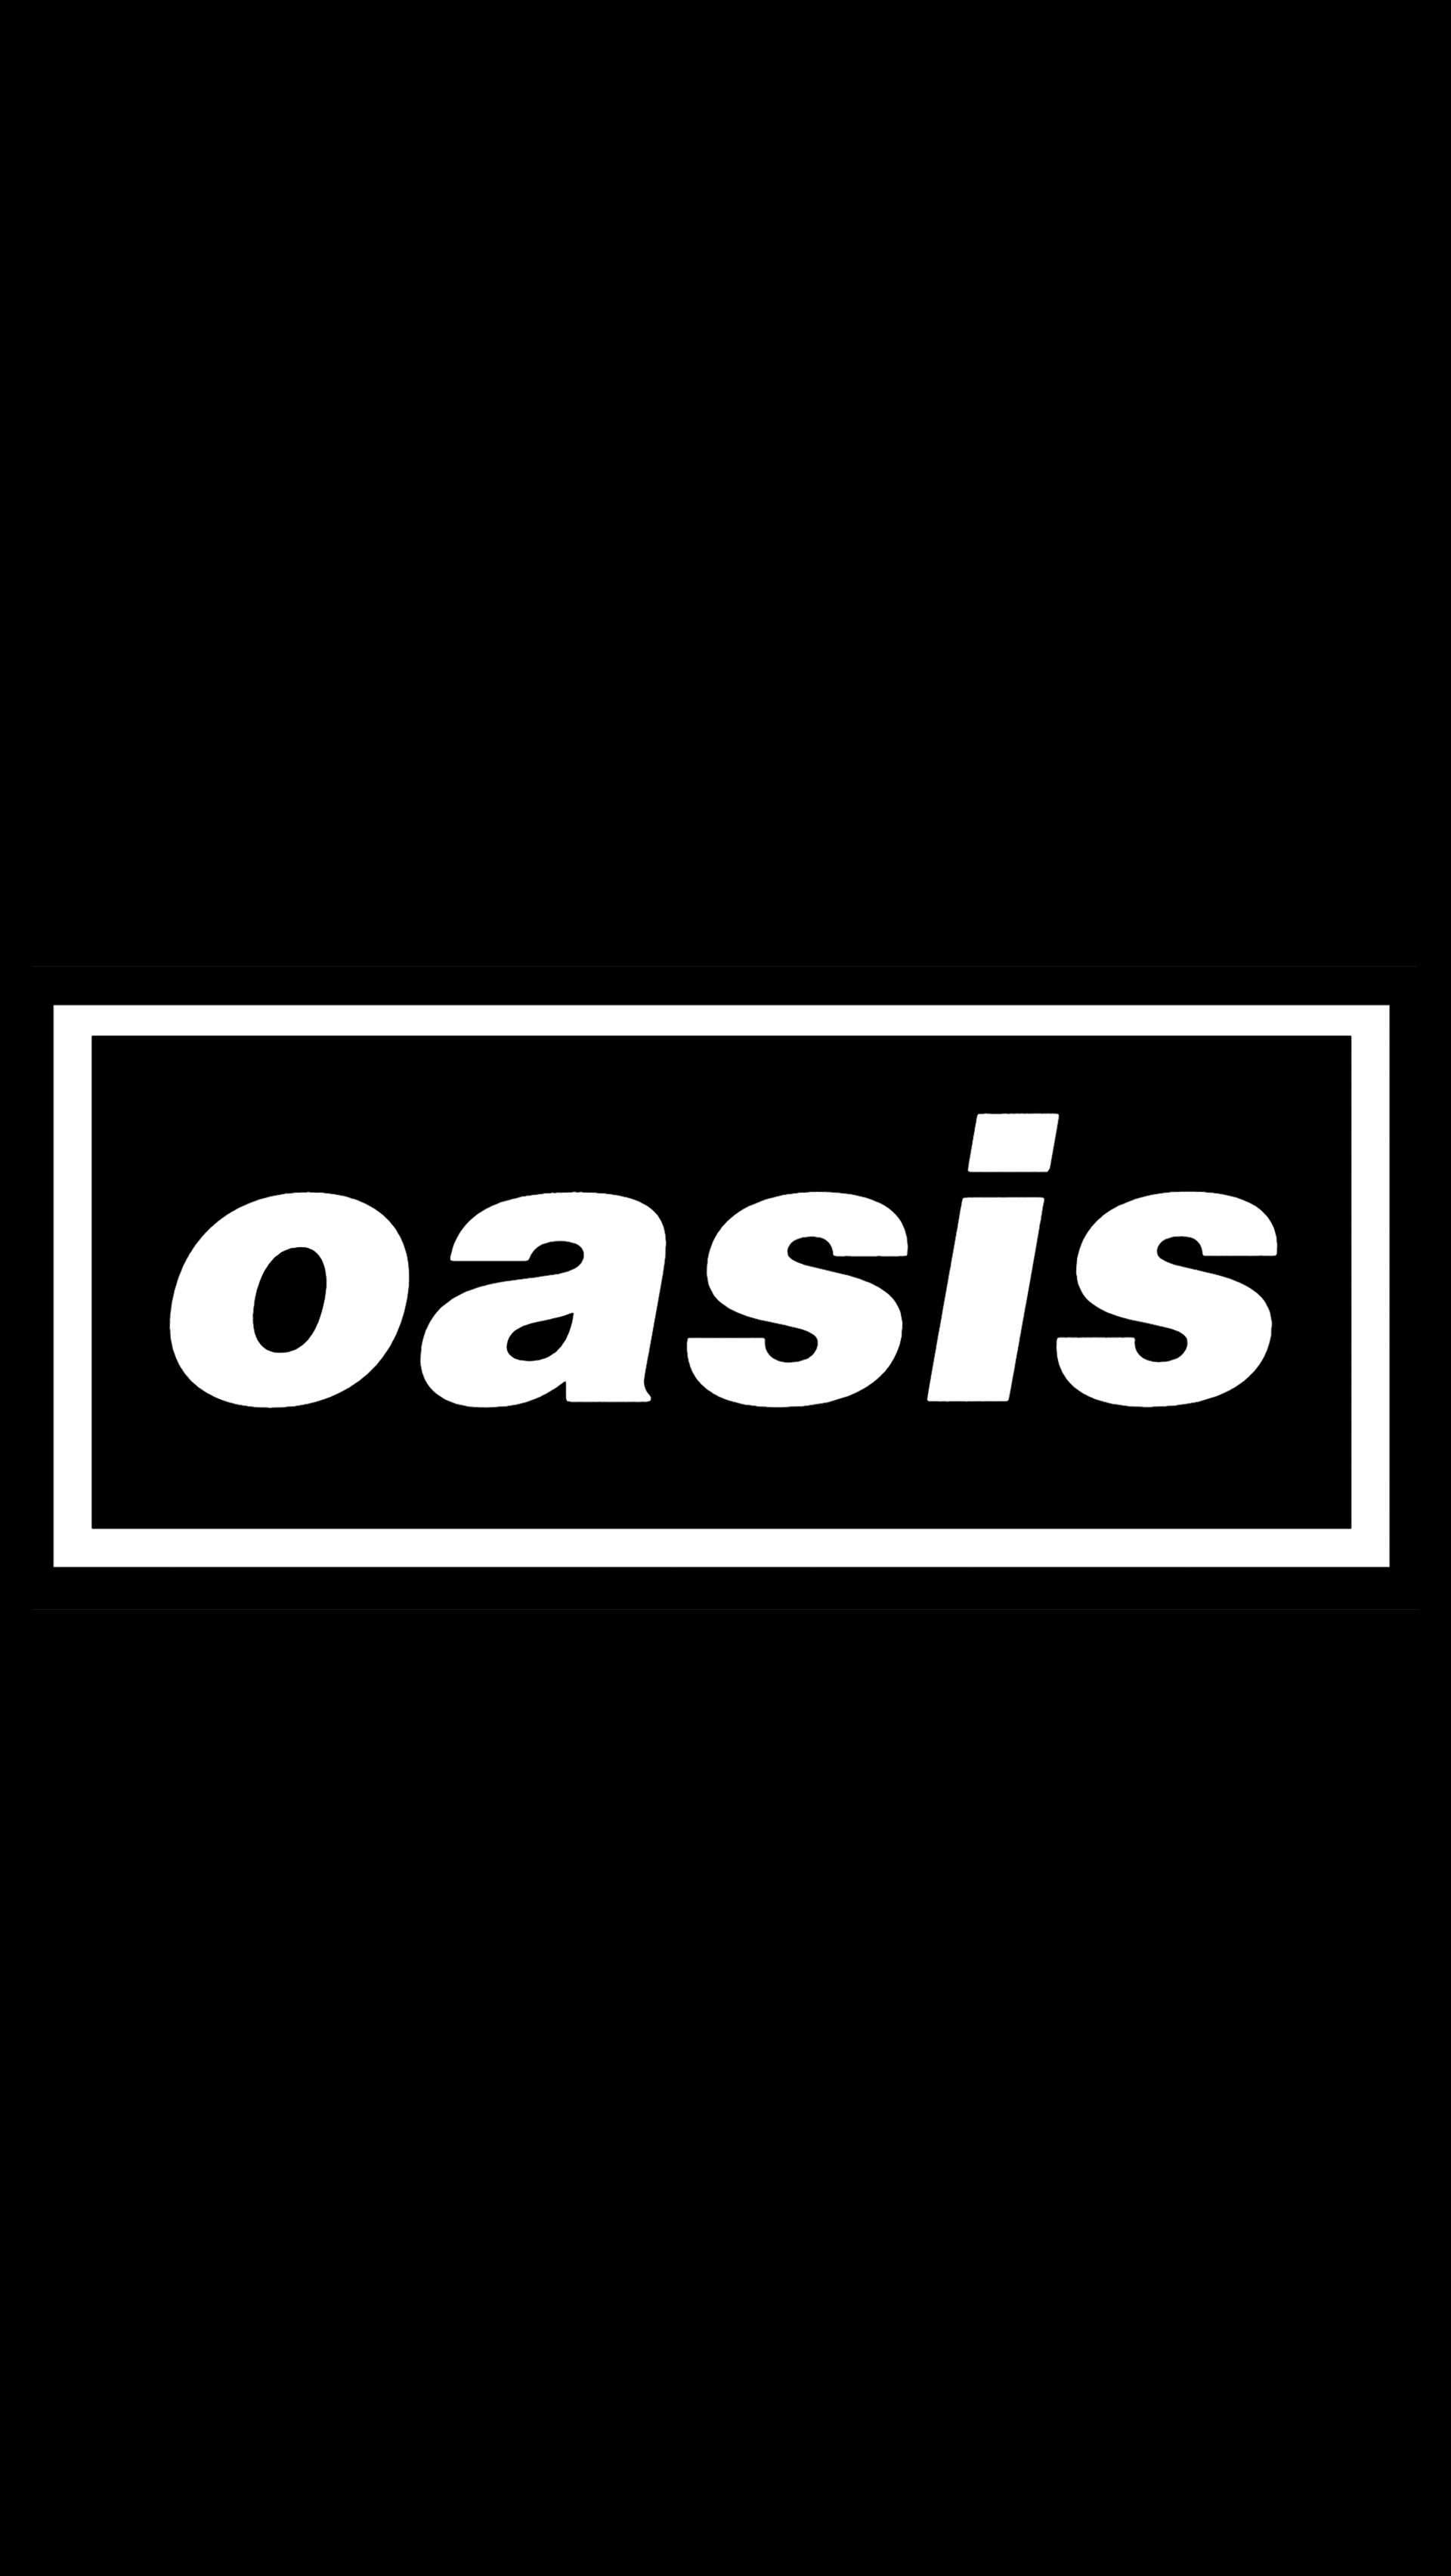 Iphone X Dynamic Wallpaper Download Oasis Wallpaper 59 Images